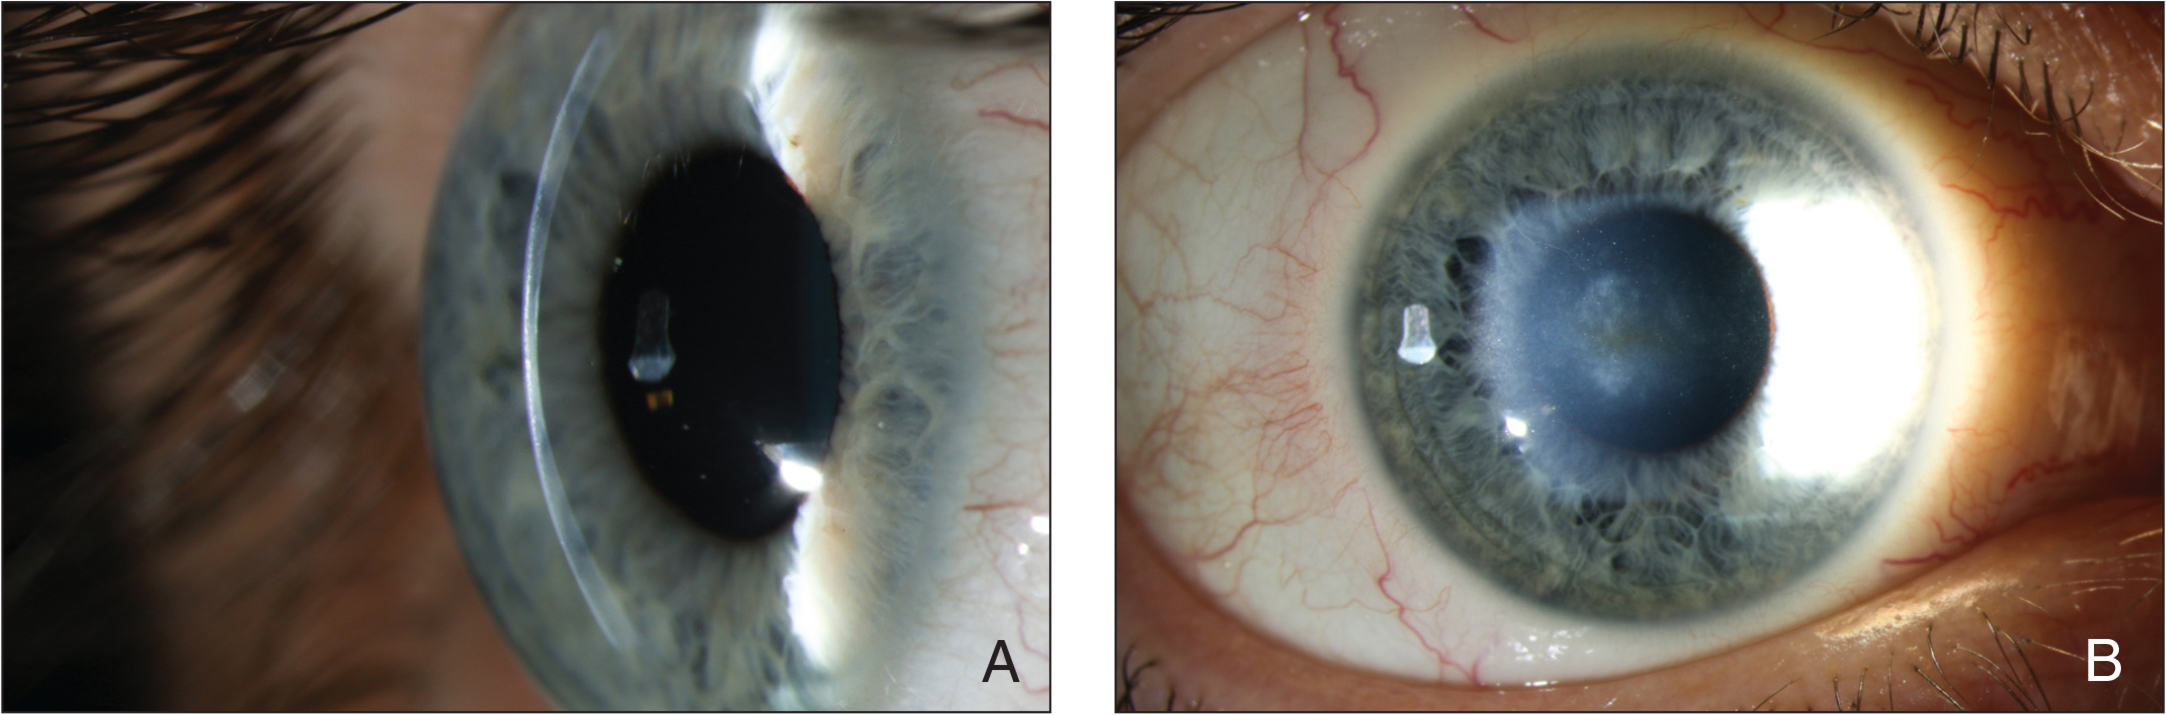 Slit-lamp photograph of the right eye with (A) slit-illumination and (B) broad beam illumination. A deep stromal scar that developed after corneal cross-linking is evident.